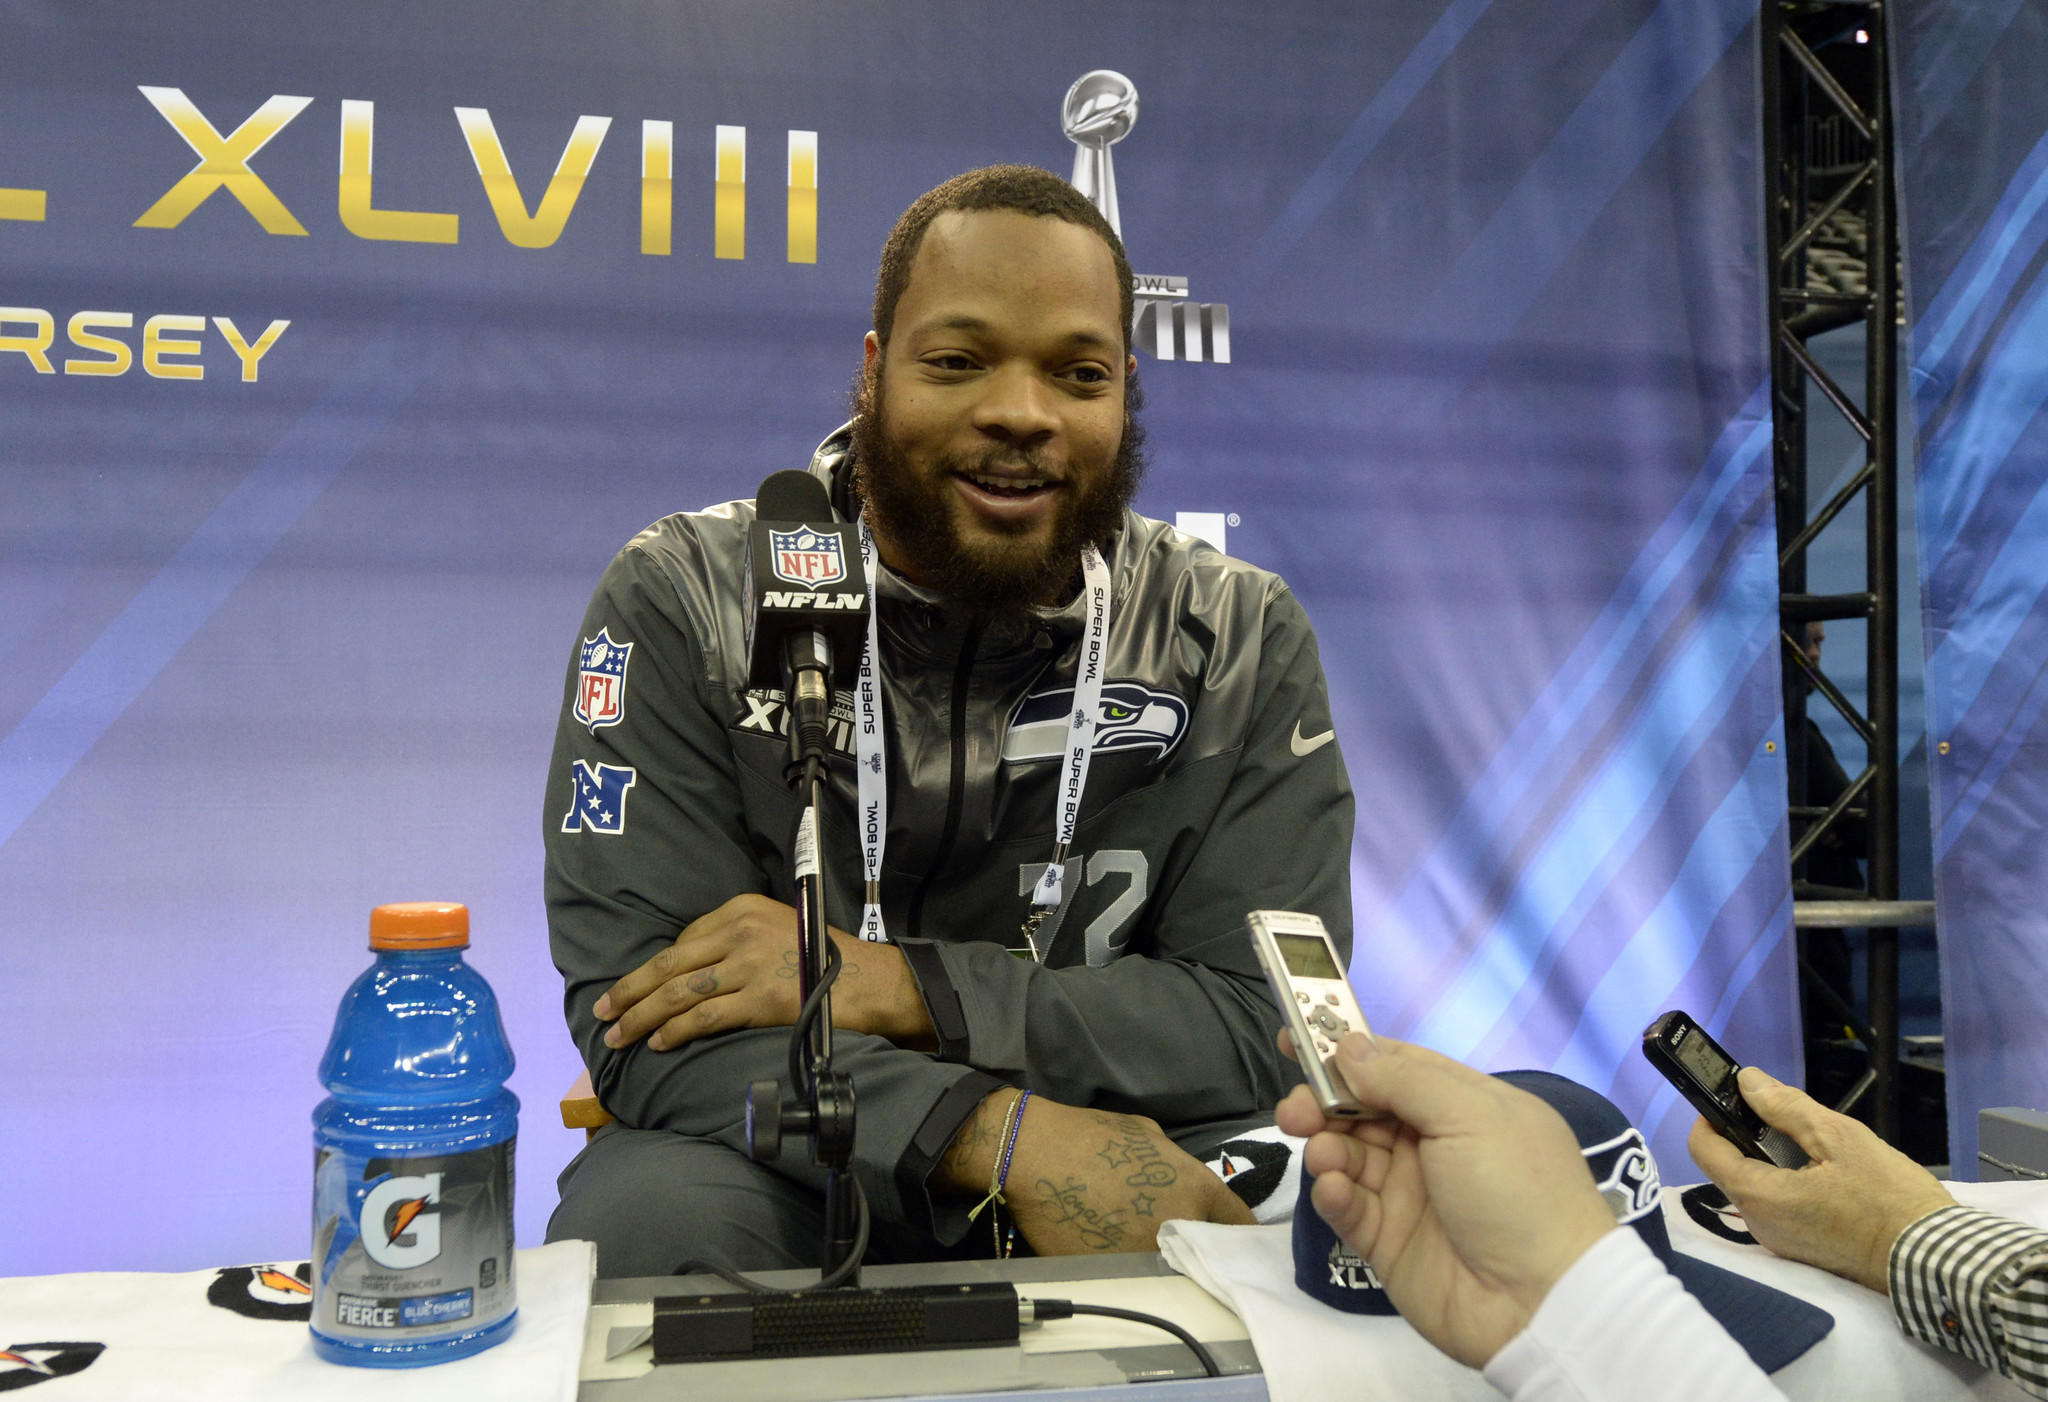 Seattle Seahawks defensive end Michael Bennett speaks during Media Day for Super Bowl XLVIII at Prudential Center.